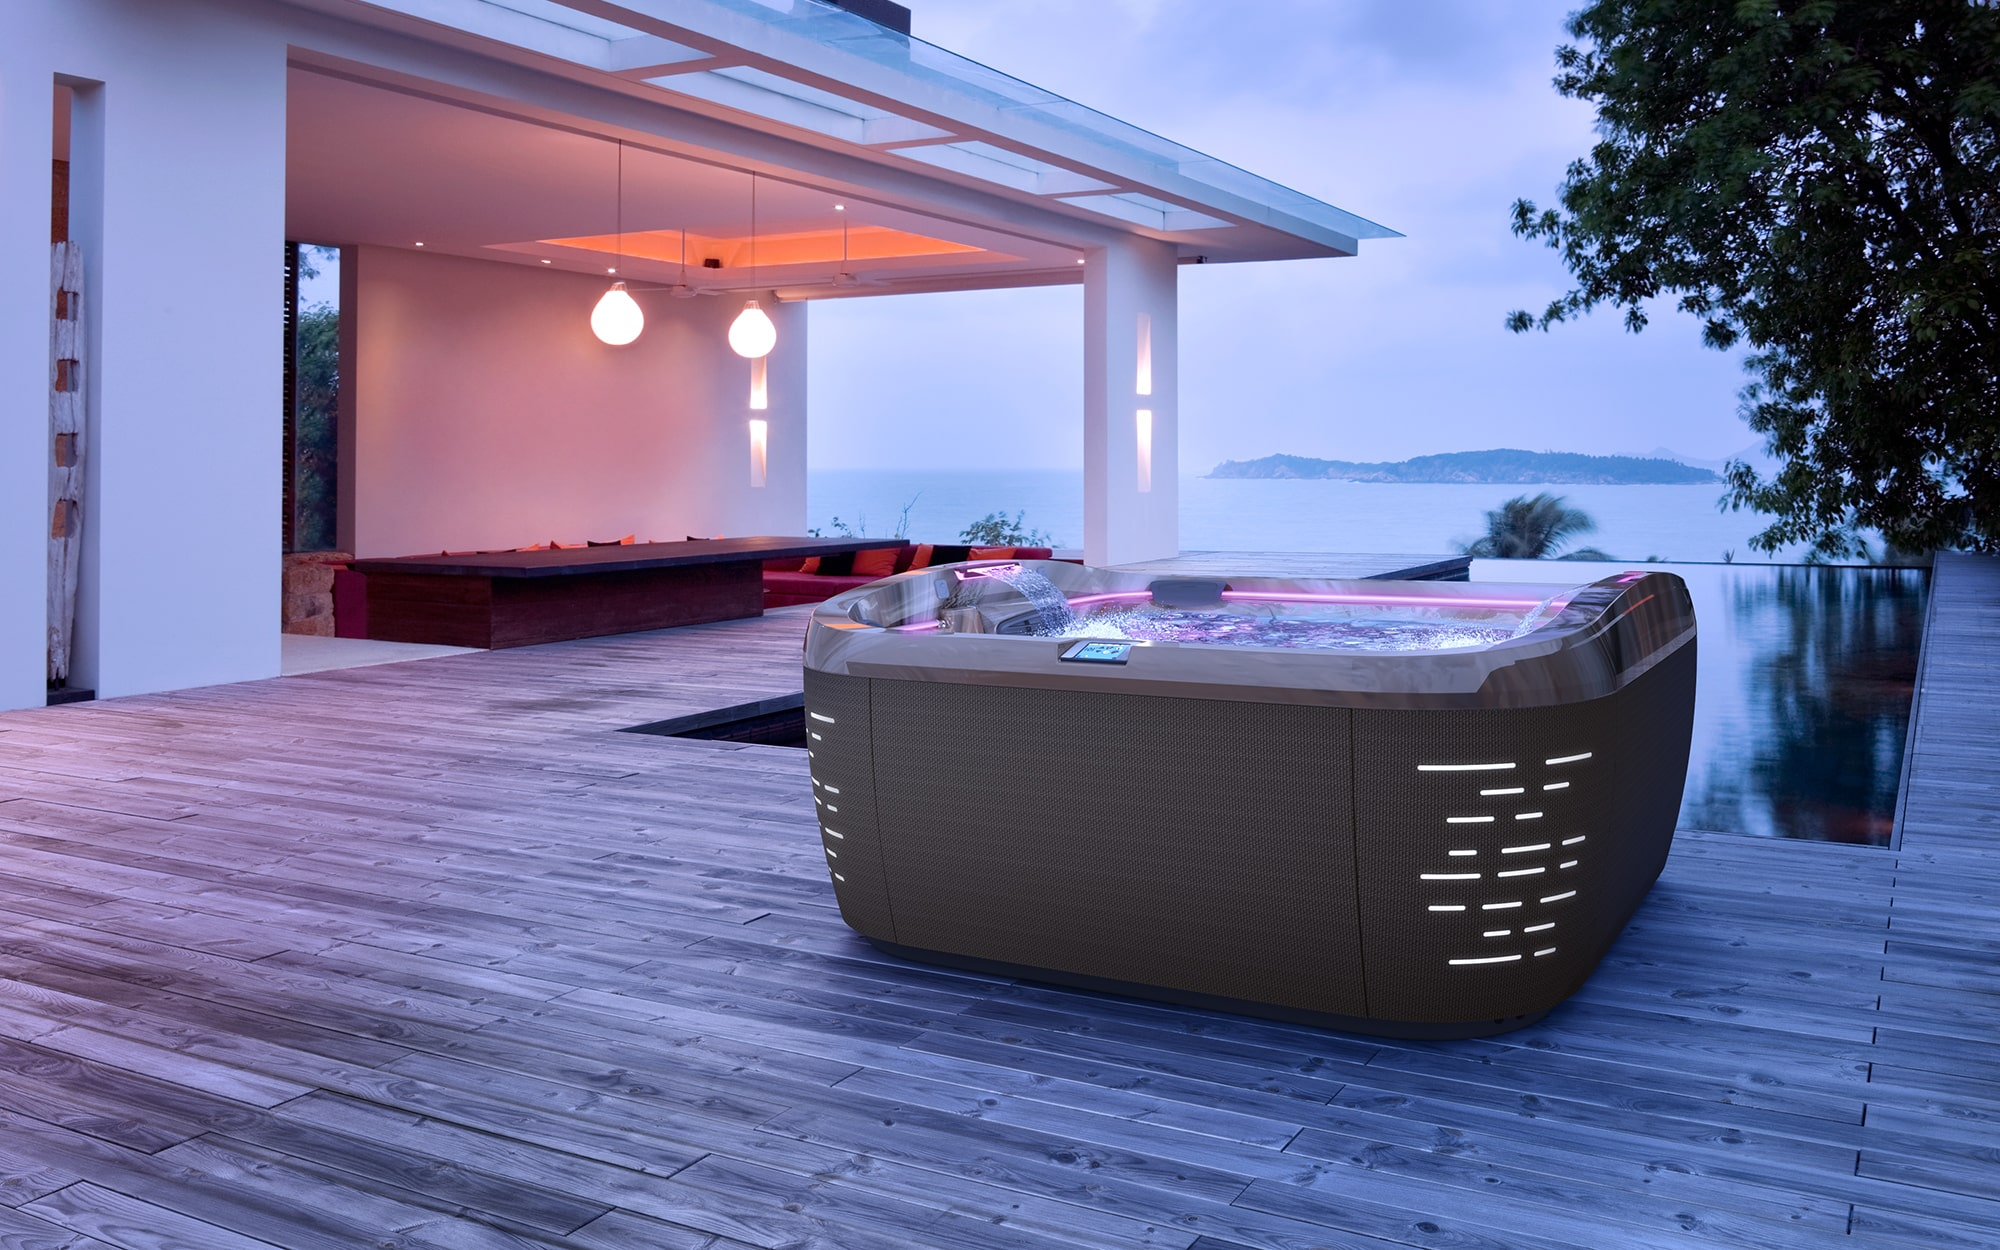 Jacuzzi Hot Tubs J-575 Installation in West Virginia and Pennsylvania